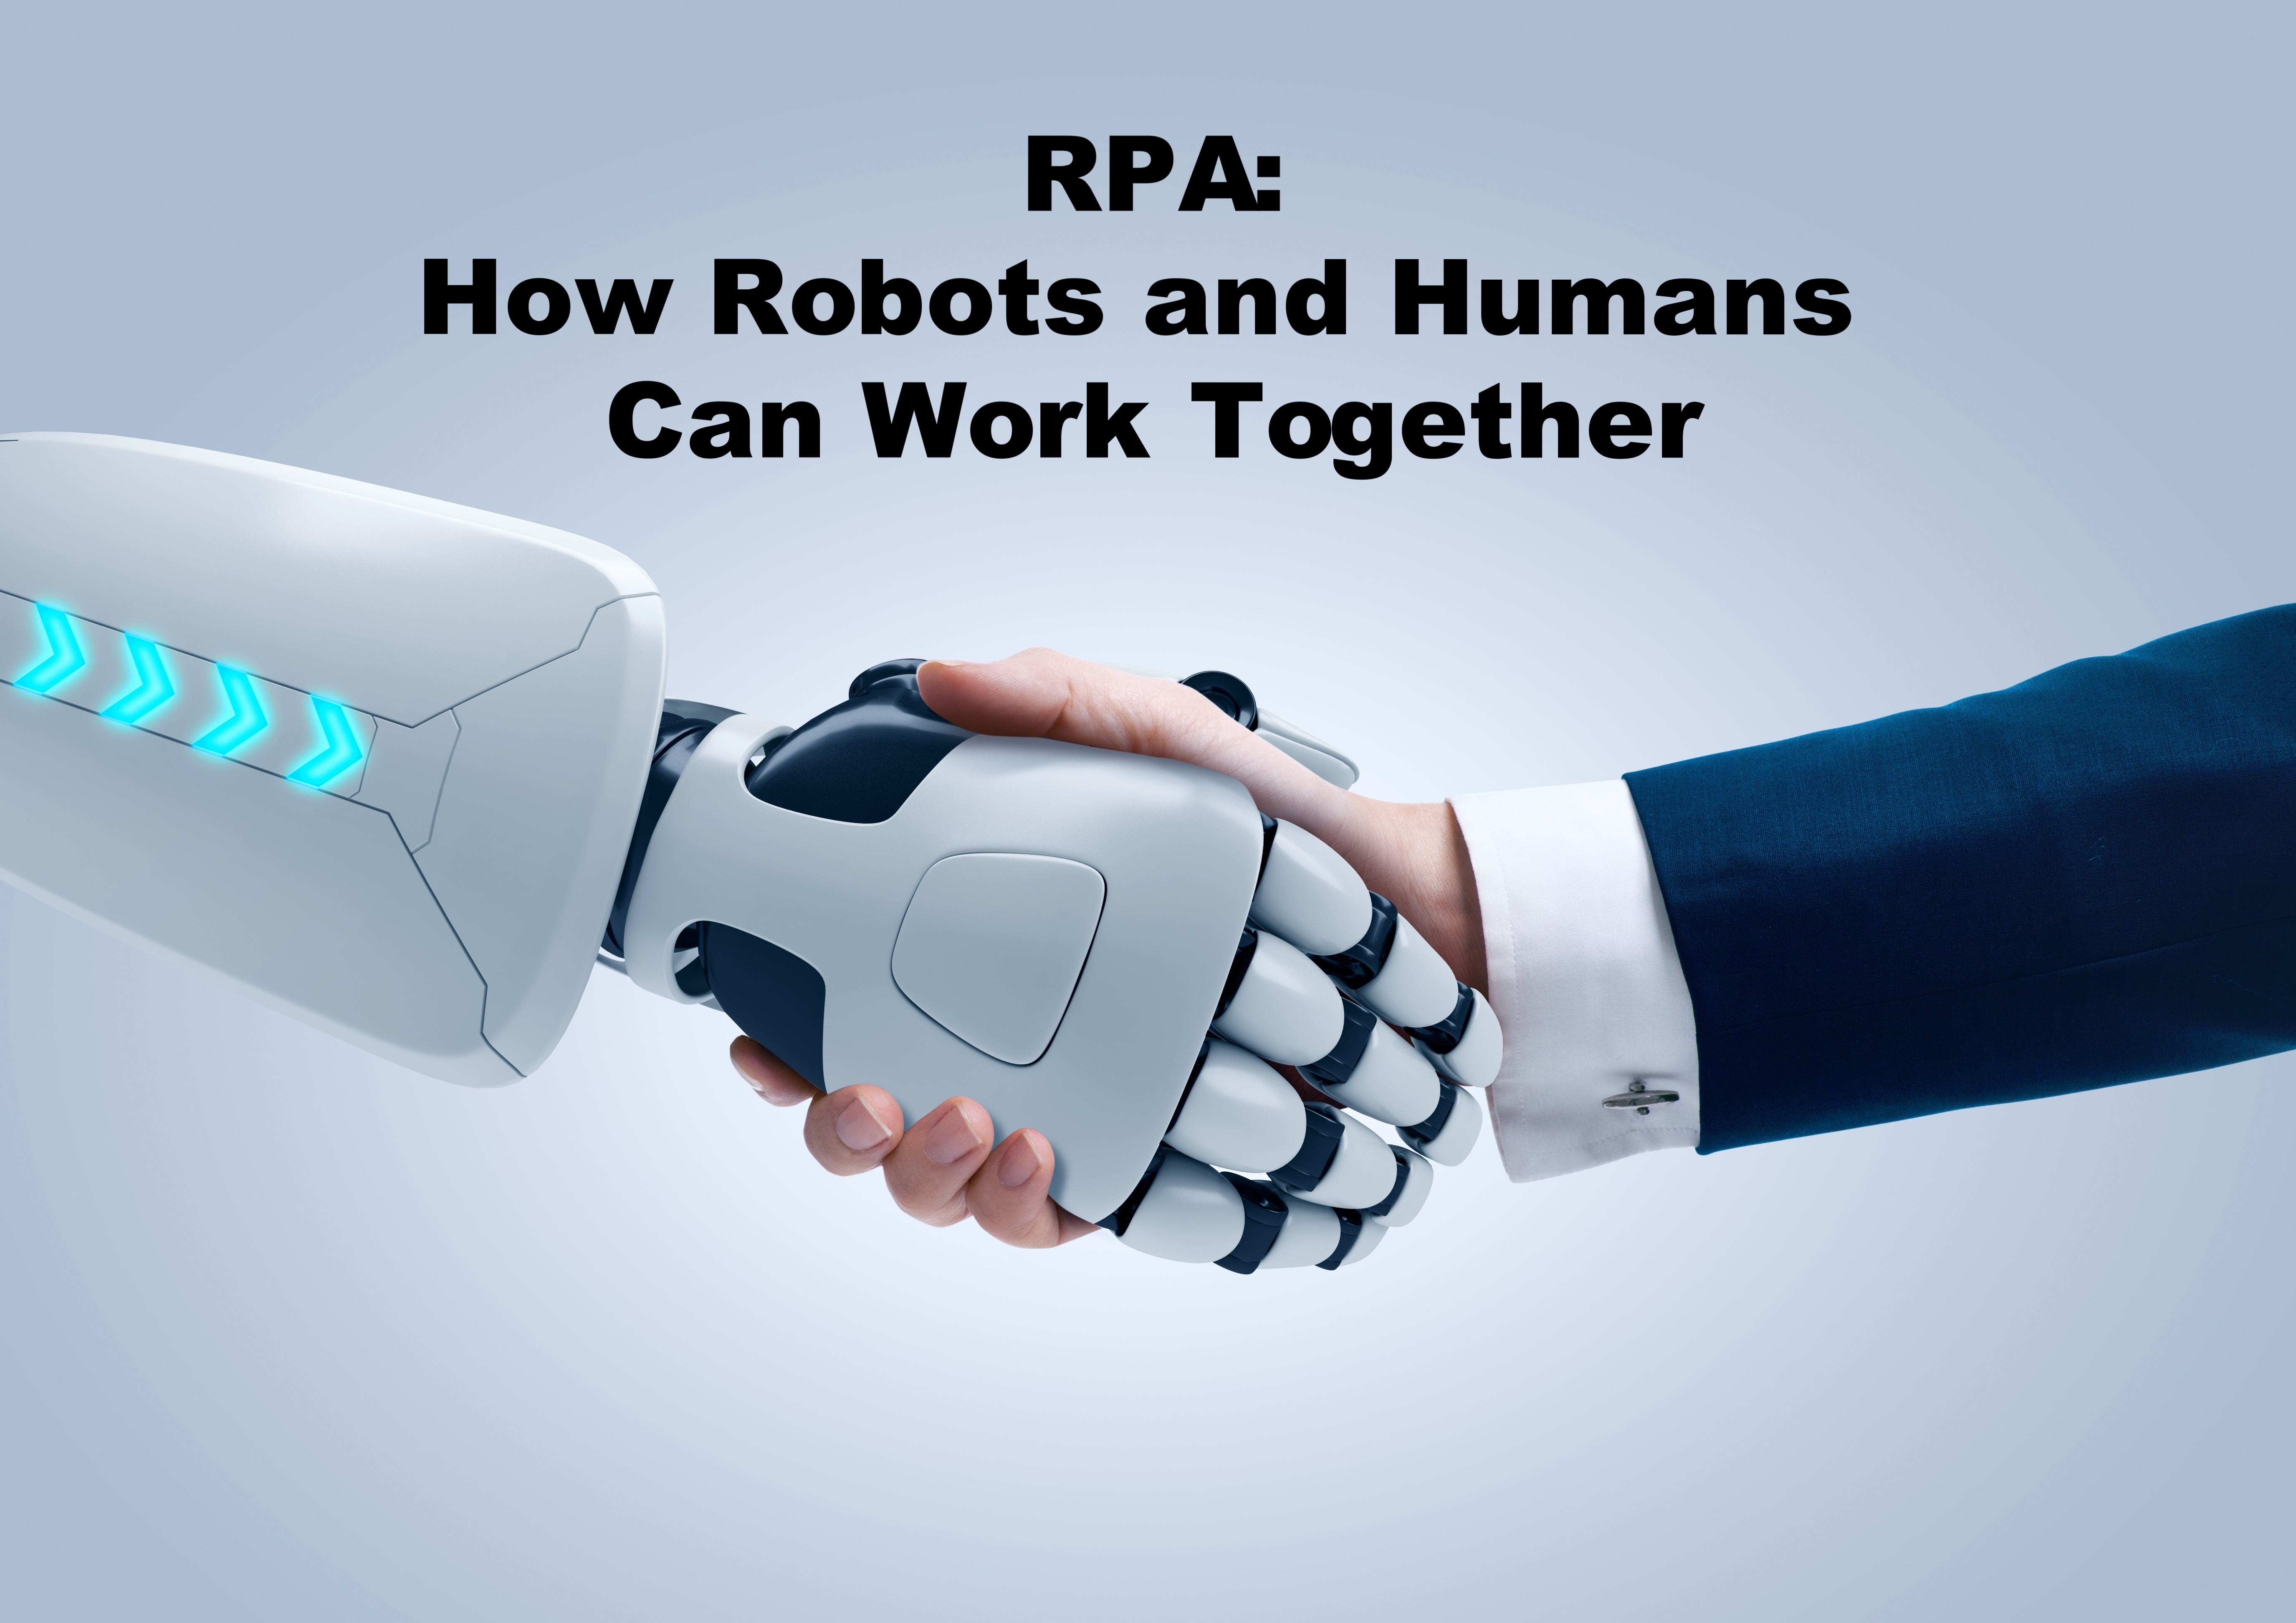 RPA: How Robots and Humans Can Work Together